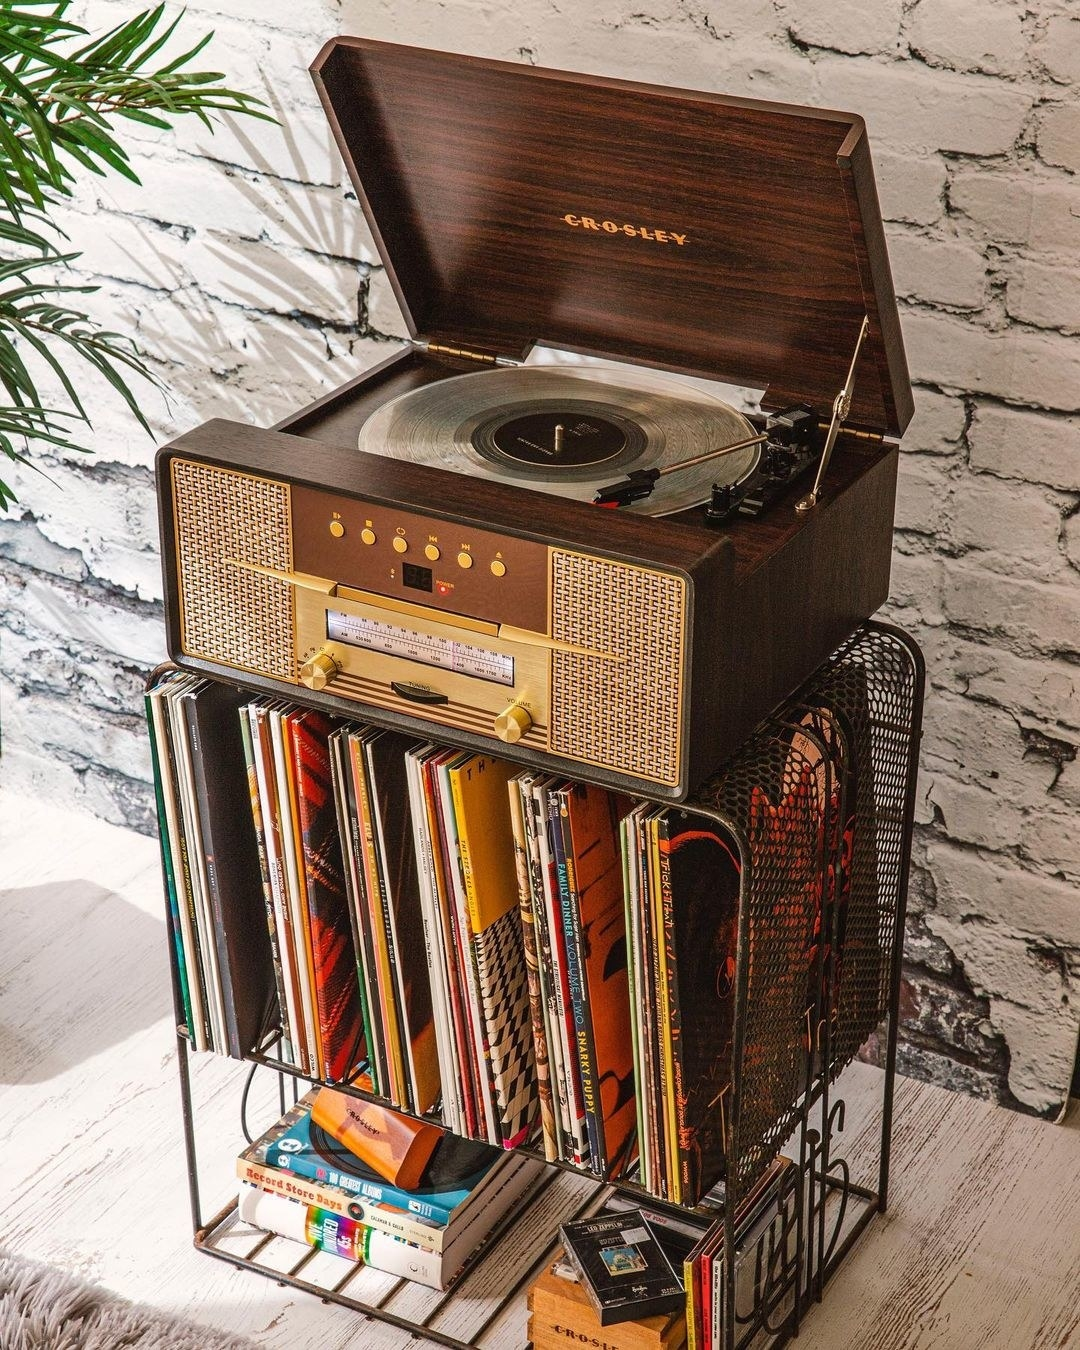 The wooden record player